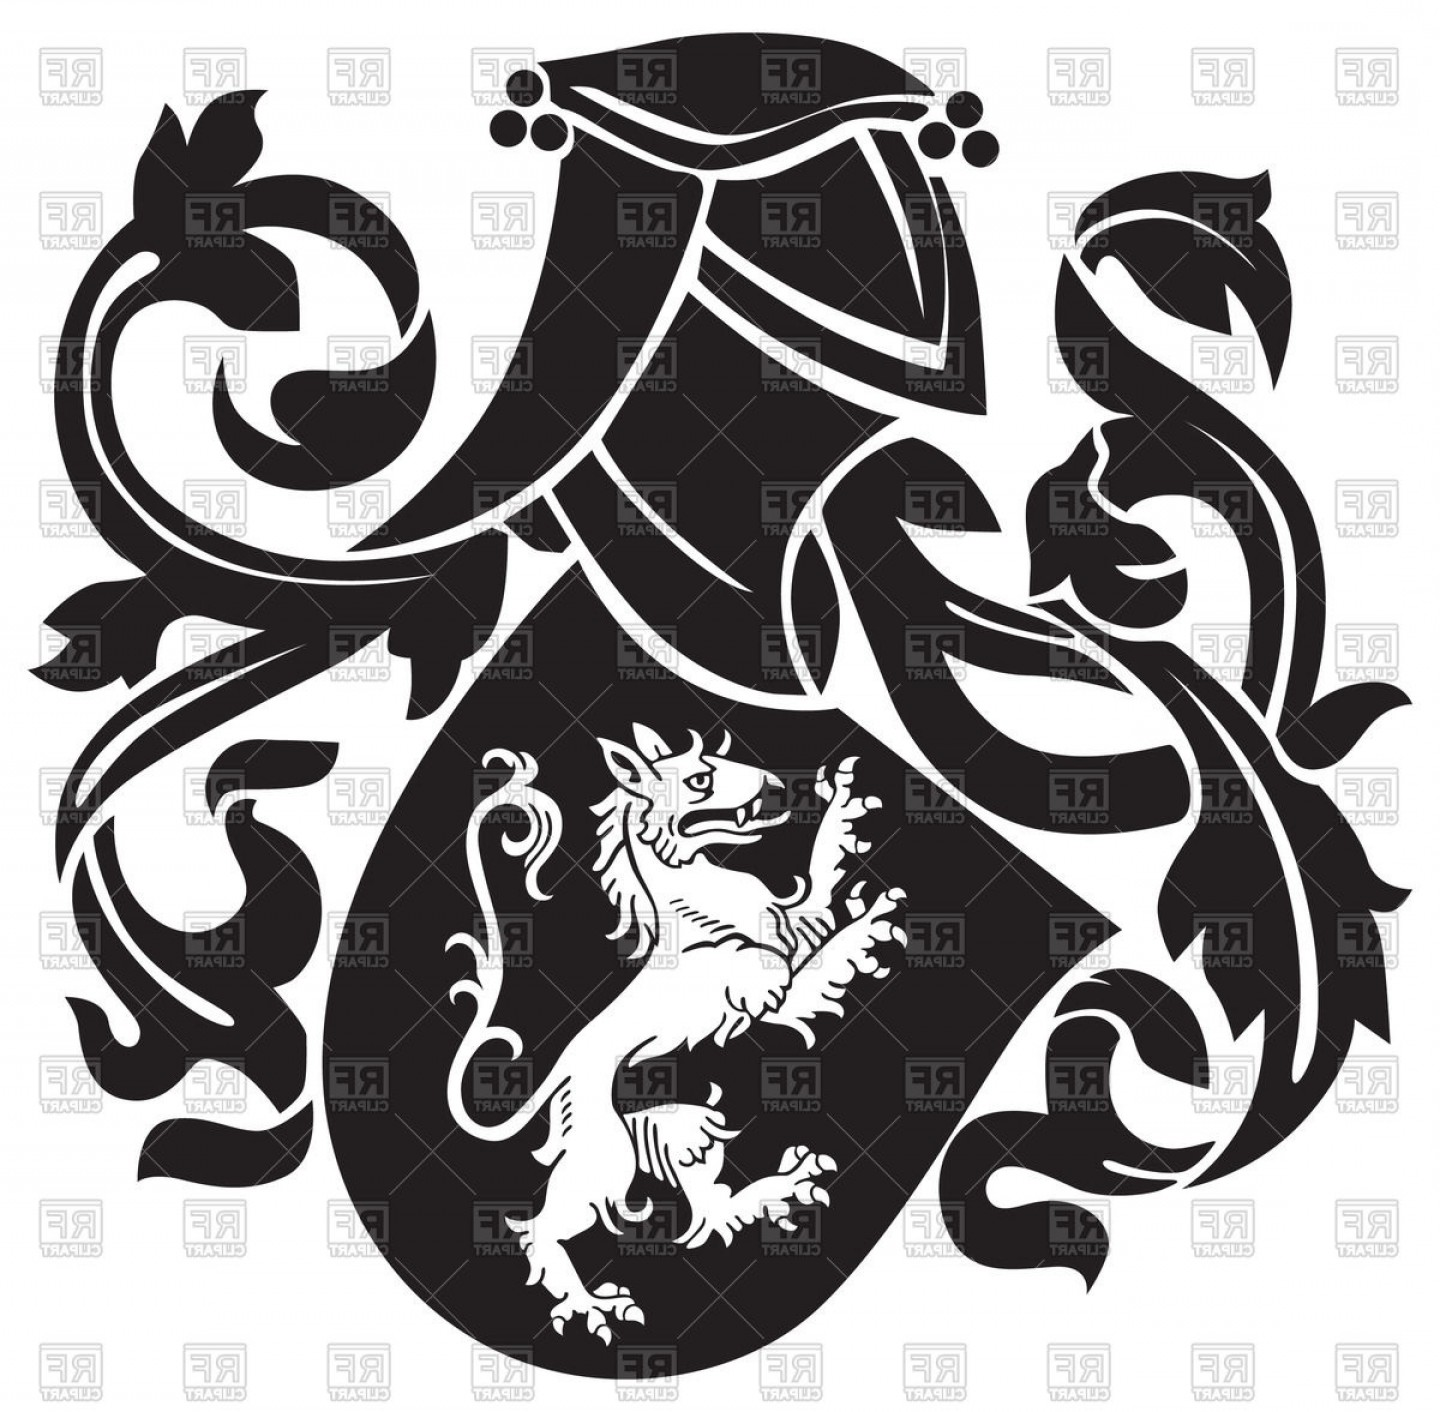 1440x1412 Ornate Heraldic Blazon With Image Of Lion On Shield Royal Coat Of